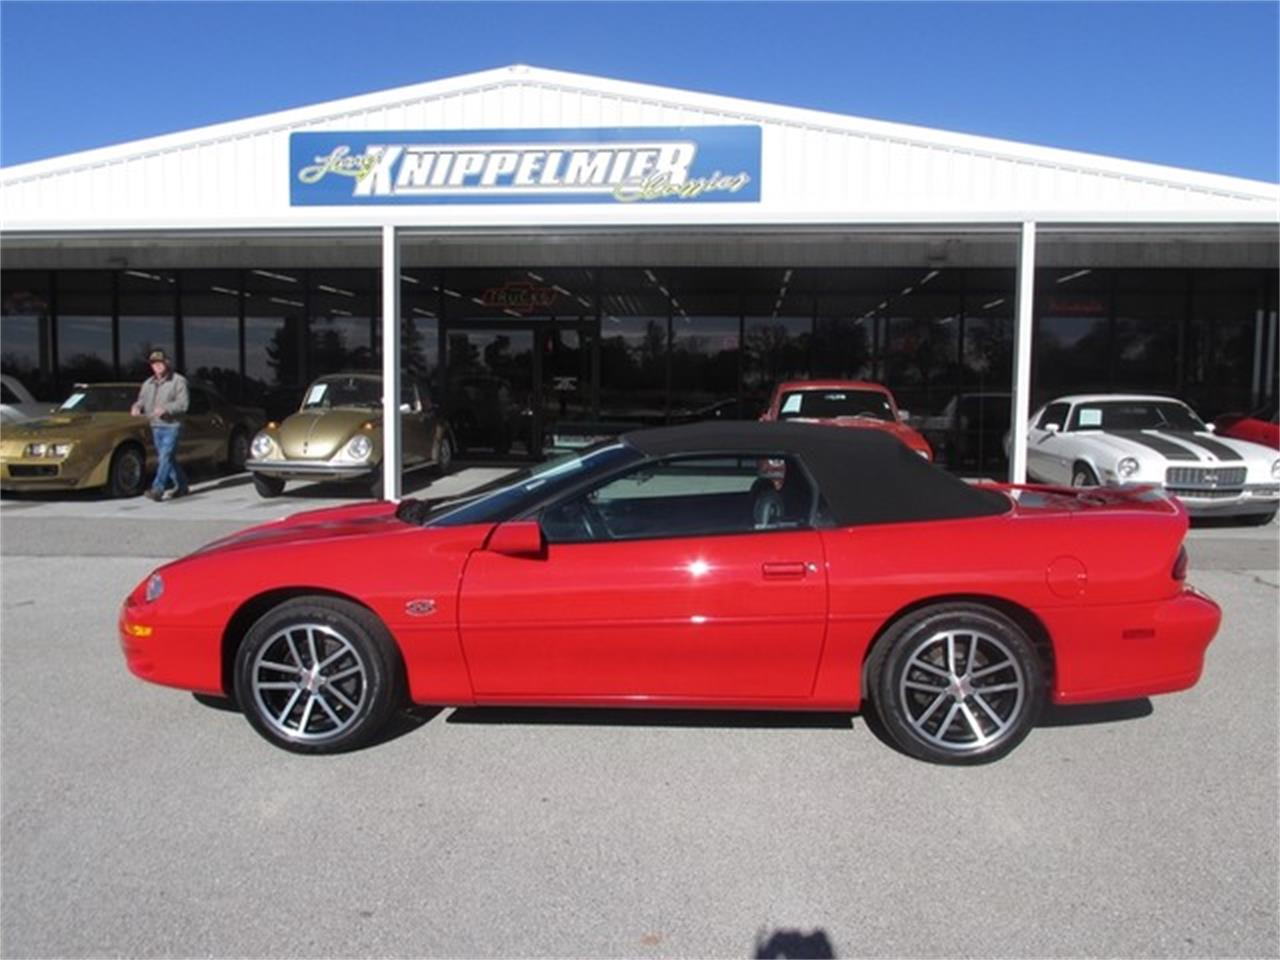 Large Picture of 2002 Chevrolet Camaro - $29,000.00 Offered by Knippelmier Classics - DA4T